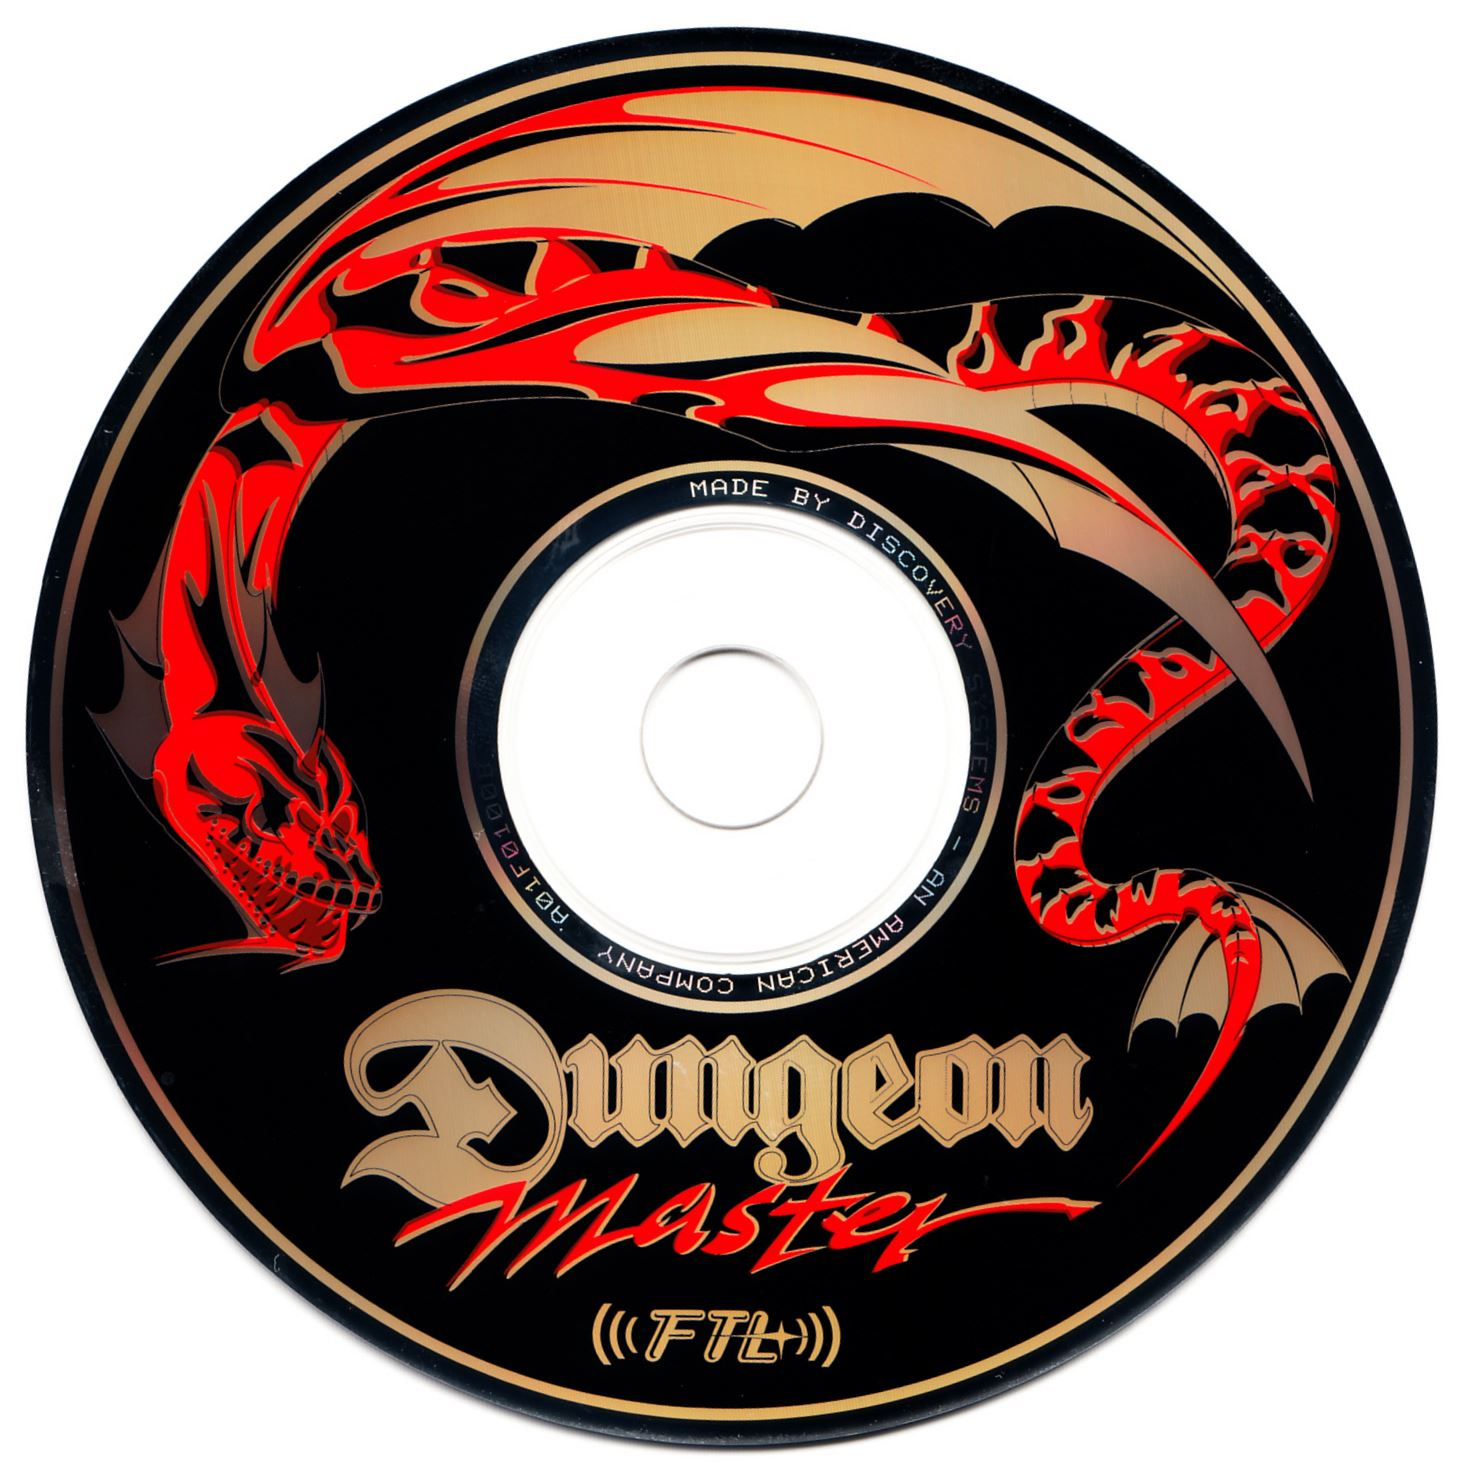 Audio CD - Dungeon Master The Album - US - Compact Disc - Front - Scan